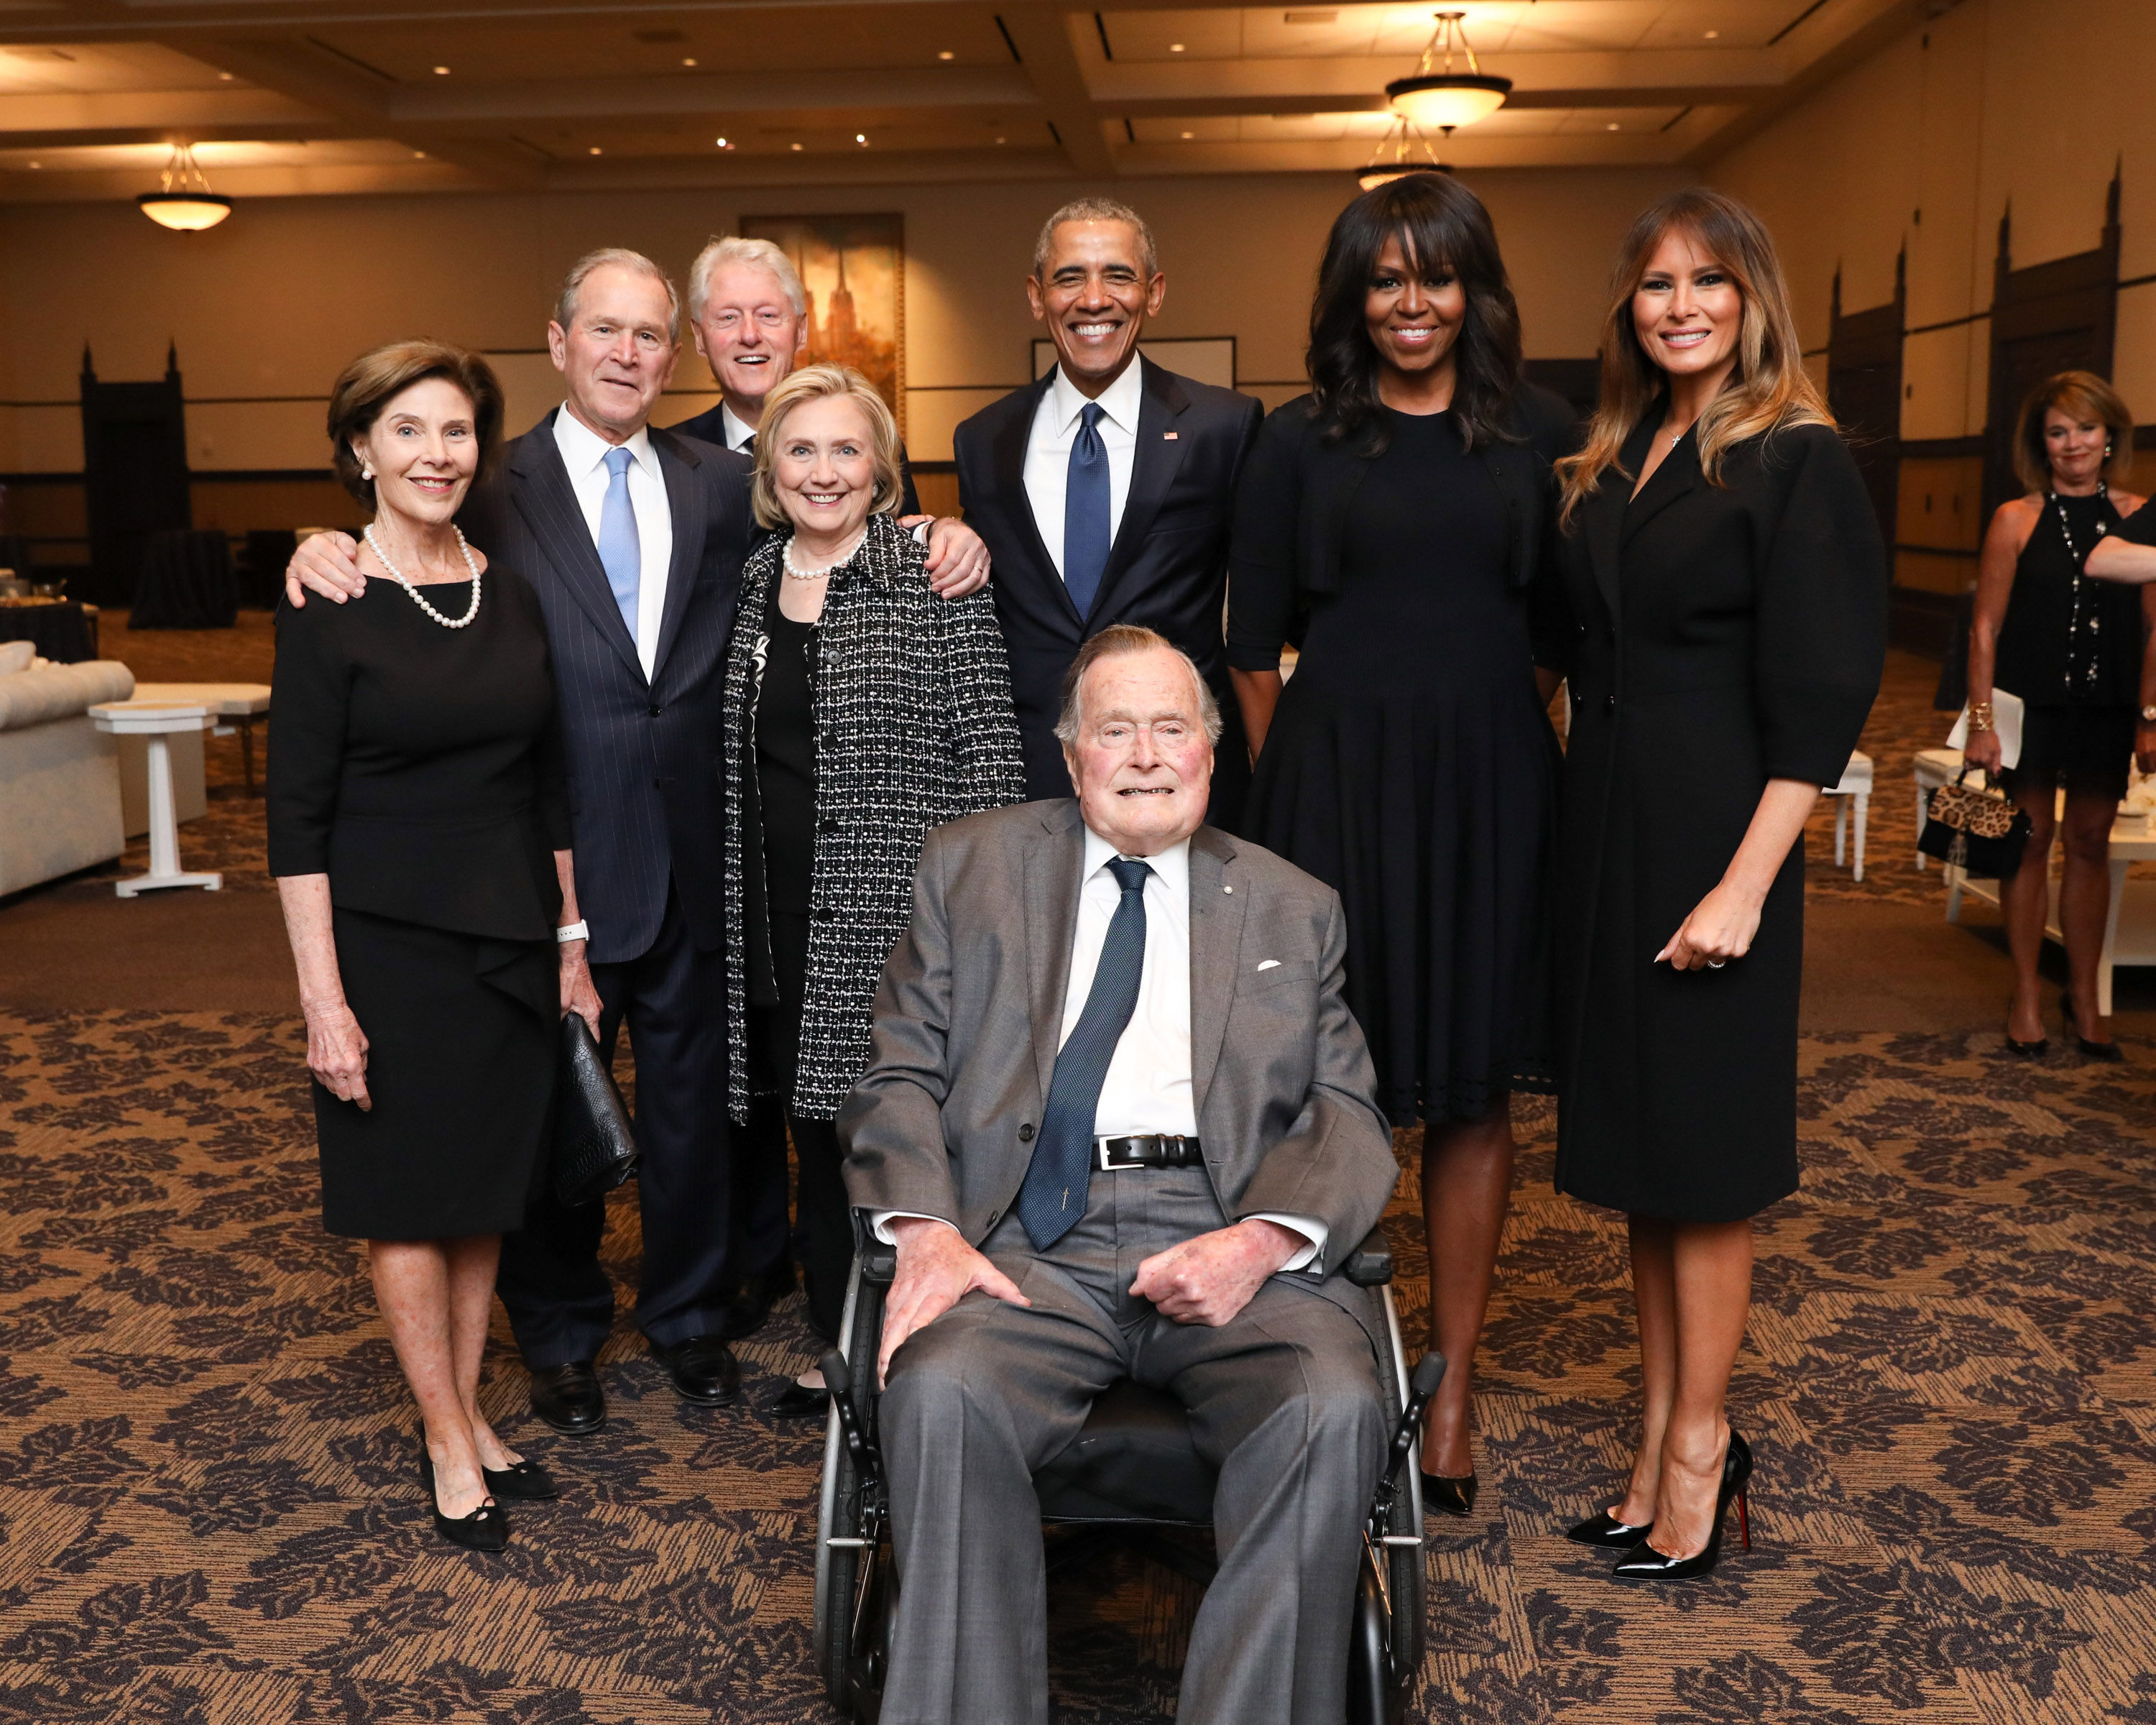 Former first lady Laura Bush, former President George W. Bush, former President Bill Clinton, former Secretary of State and first lady Hilary Clinton, former President Barack Obama, former President George H. W. Bush, former first lady Michelle Obama and current first lady Melania Trump pose for a group photo at the funeral ceremony for the late first lady Barbara Bush at St. Martin's Episcopal Church on April 21, 2018 in Houston, Texas. (Photo by Paul Morse/George W. Bush Presidential Center via Getty Images)